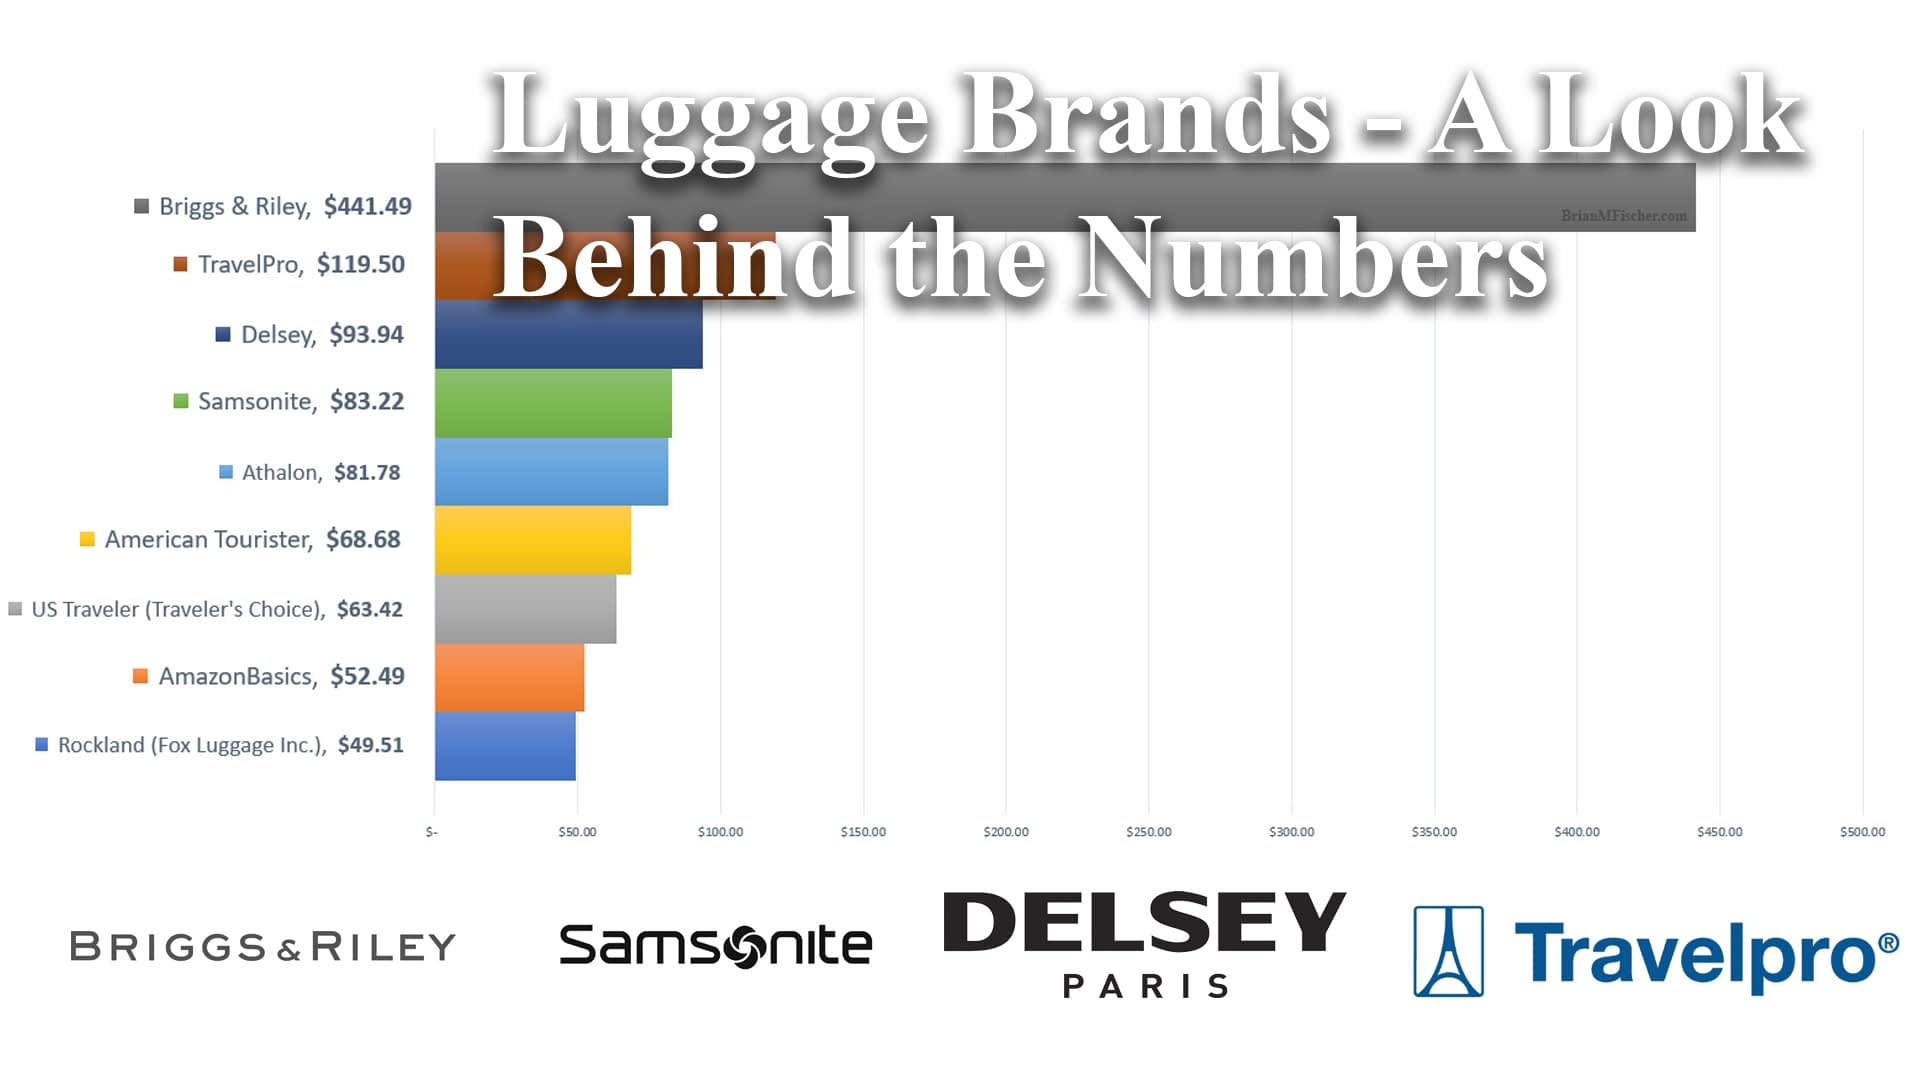 Luggage Brands Analysis